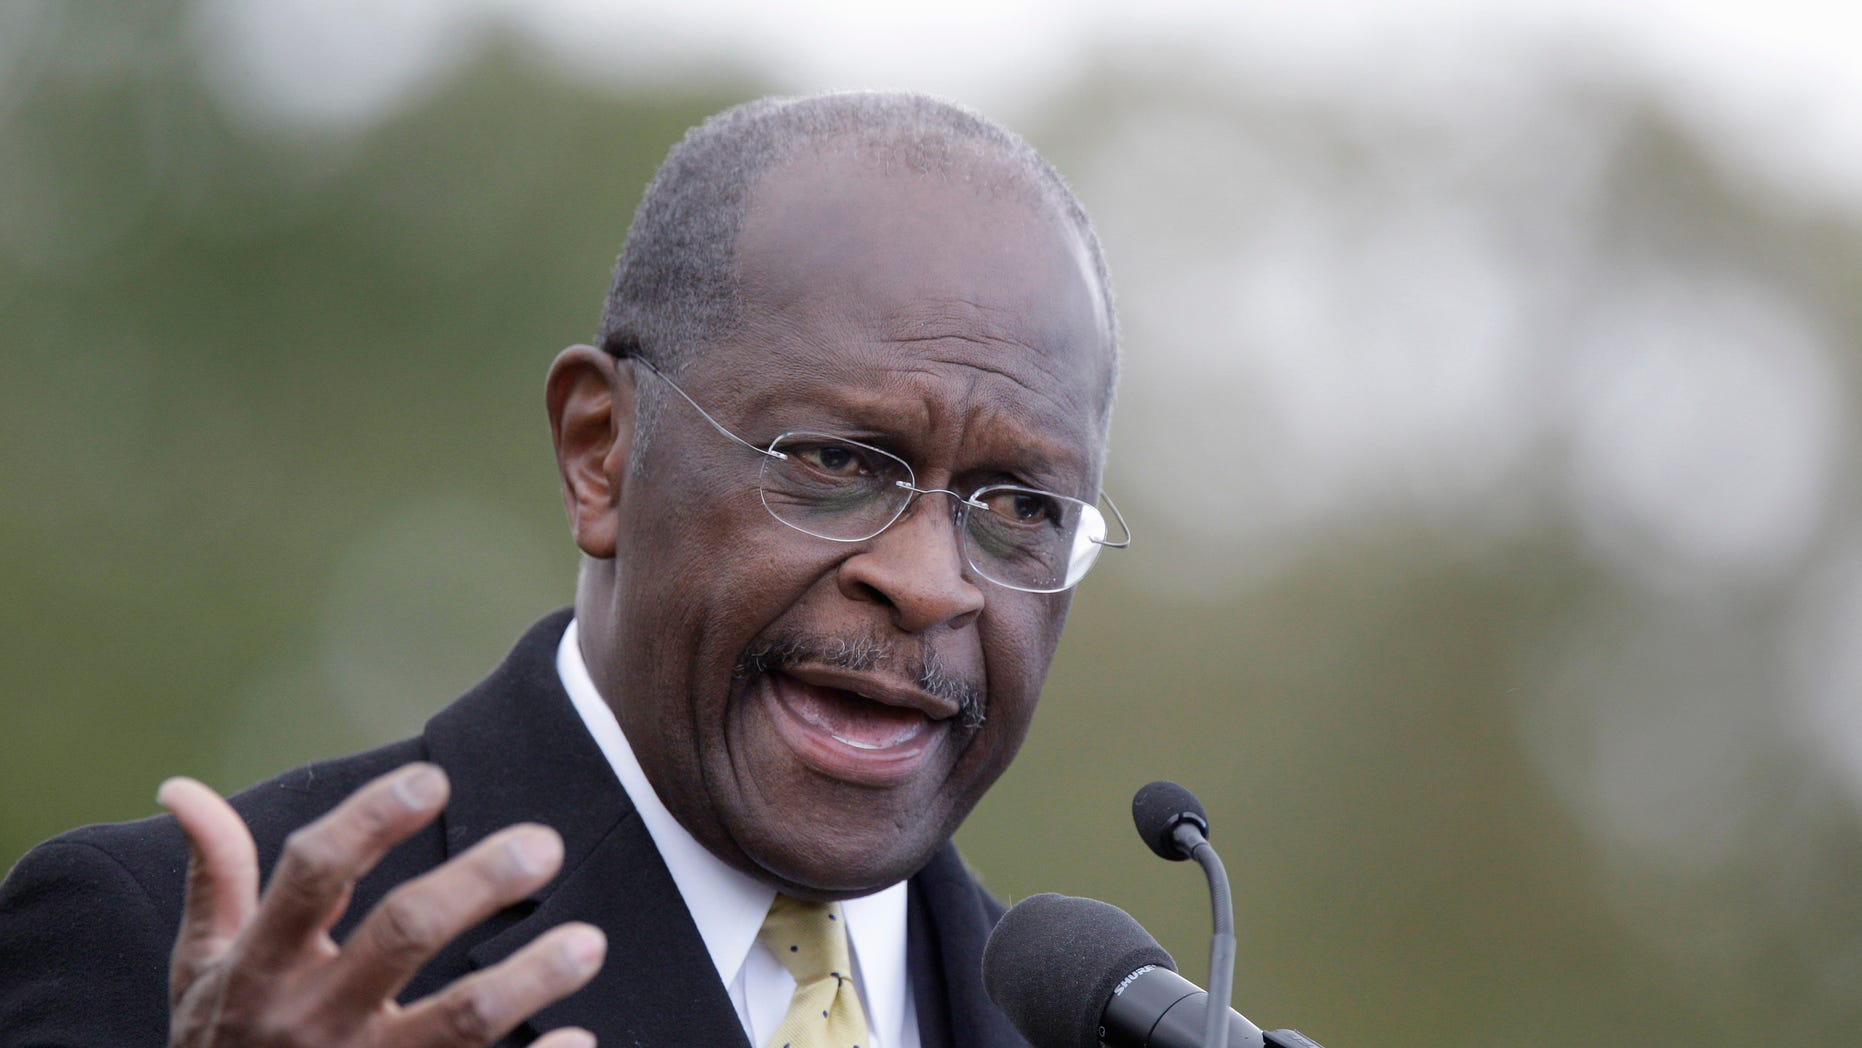 Republican presidential candidate, Herman Cain addresses the crowd during a campaign stop in Detroit, Friday, Oct. 21, 2011.